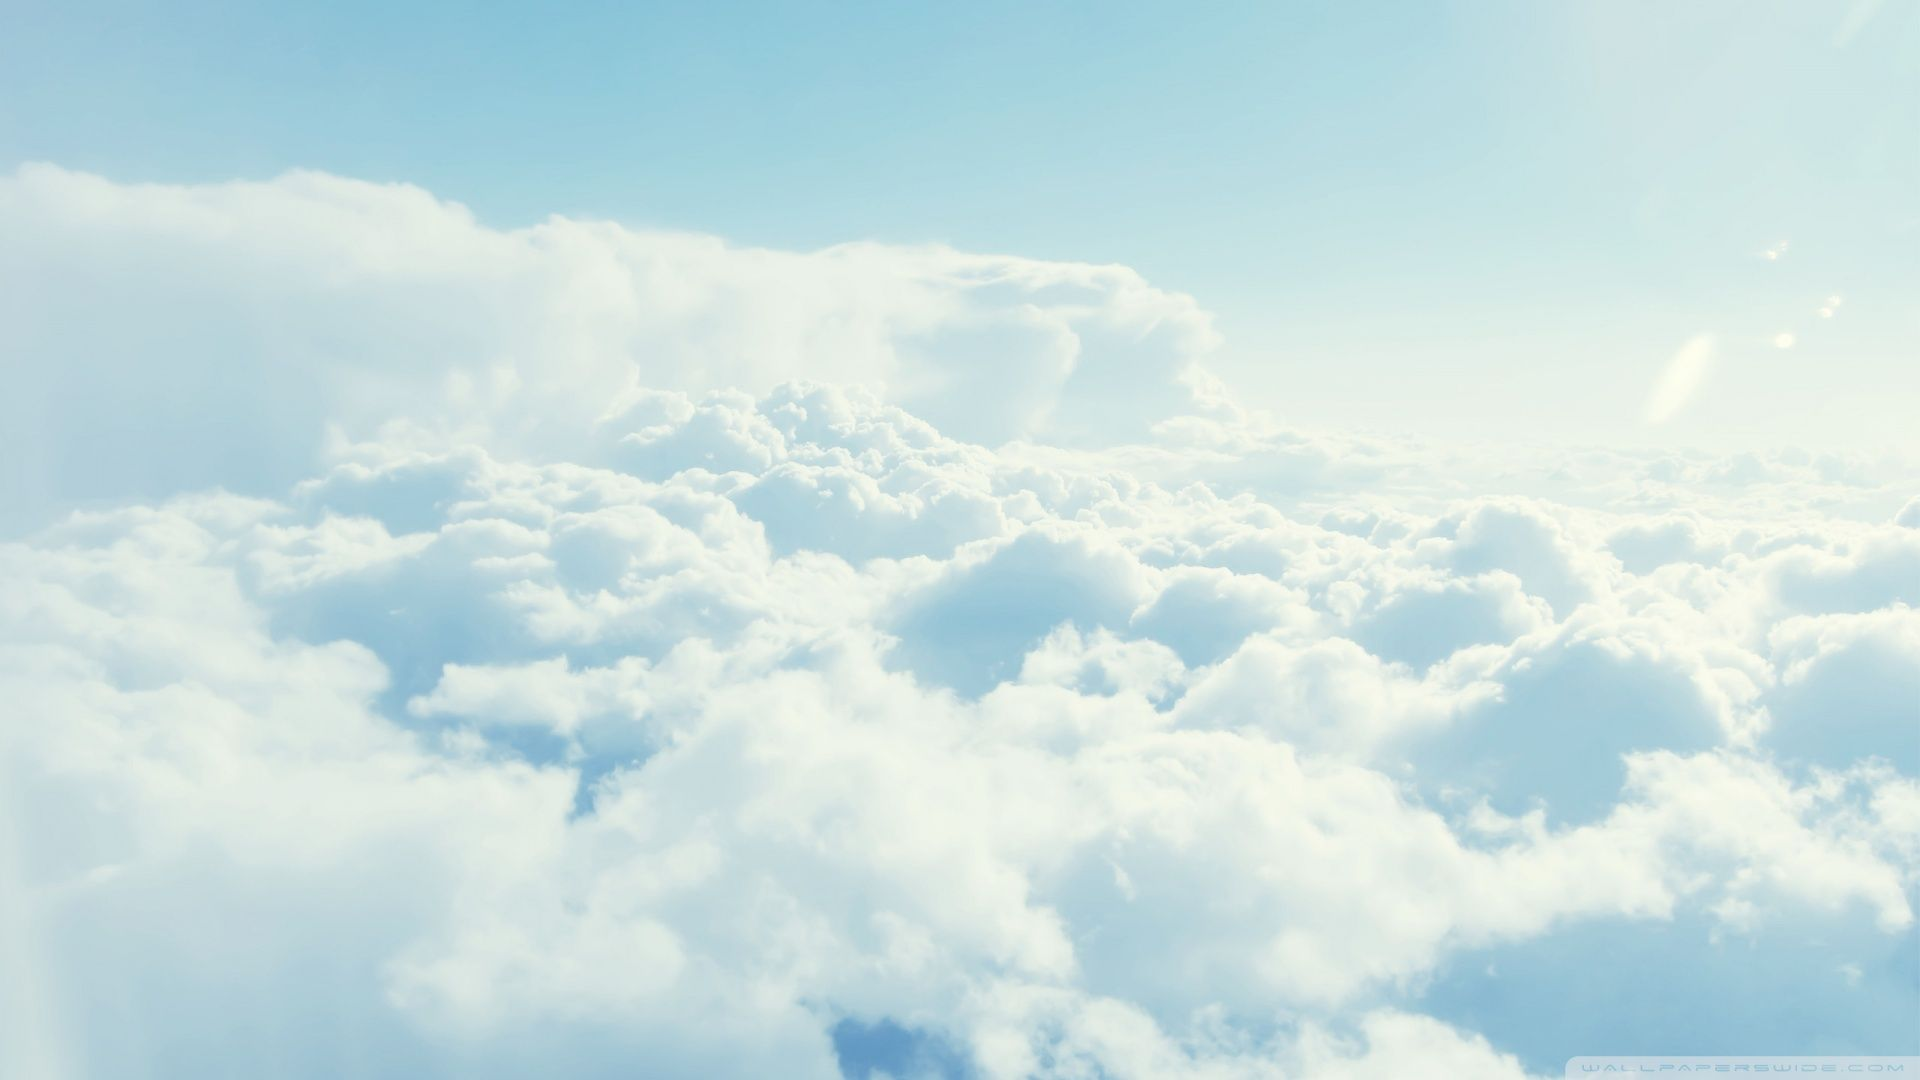 Above The Clouds Hd Desktop Wallpaper High Definition Cloud